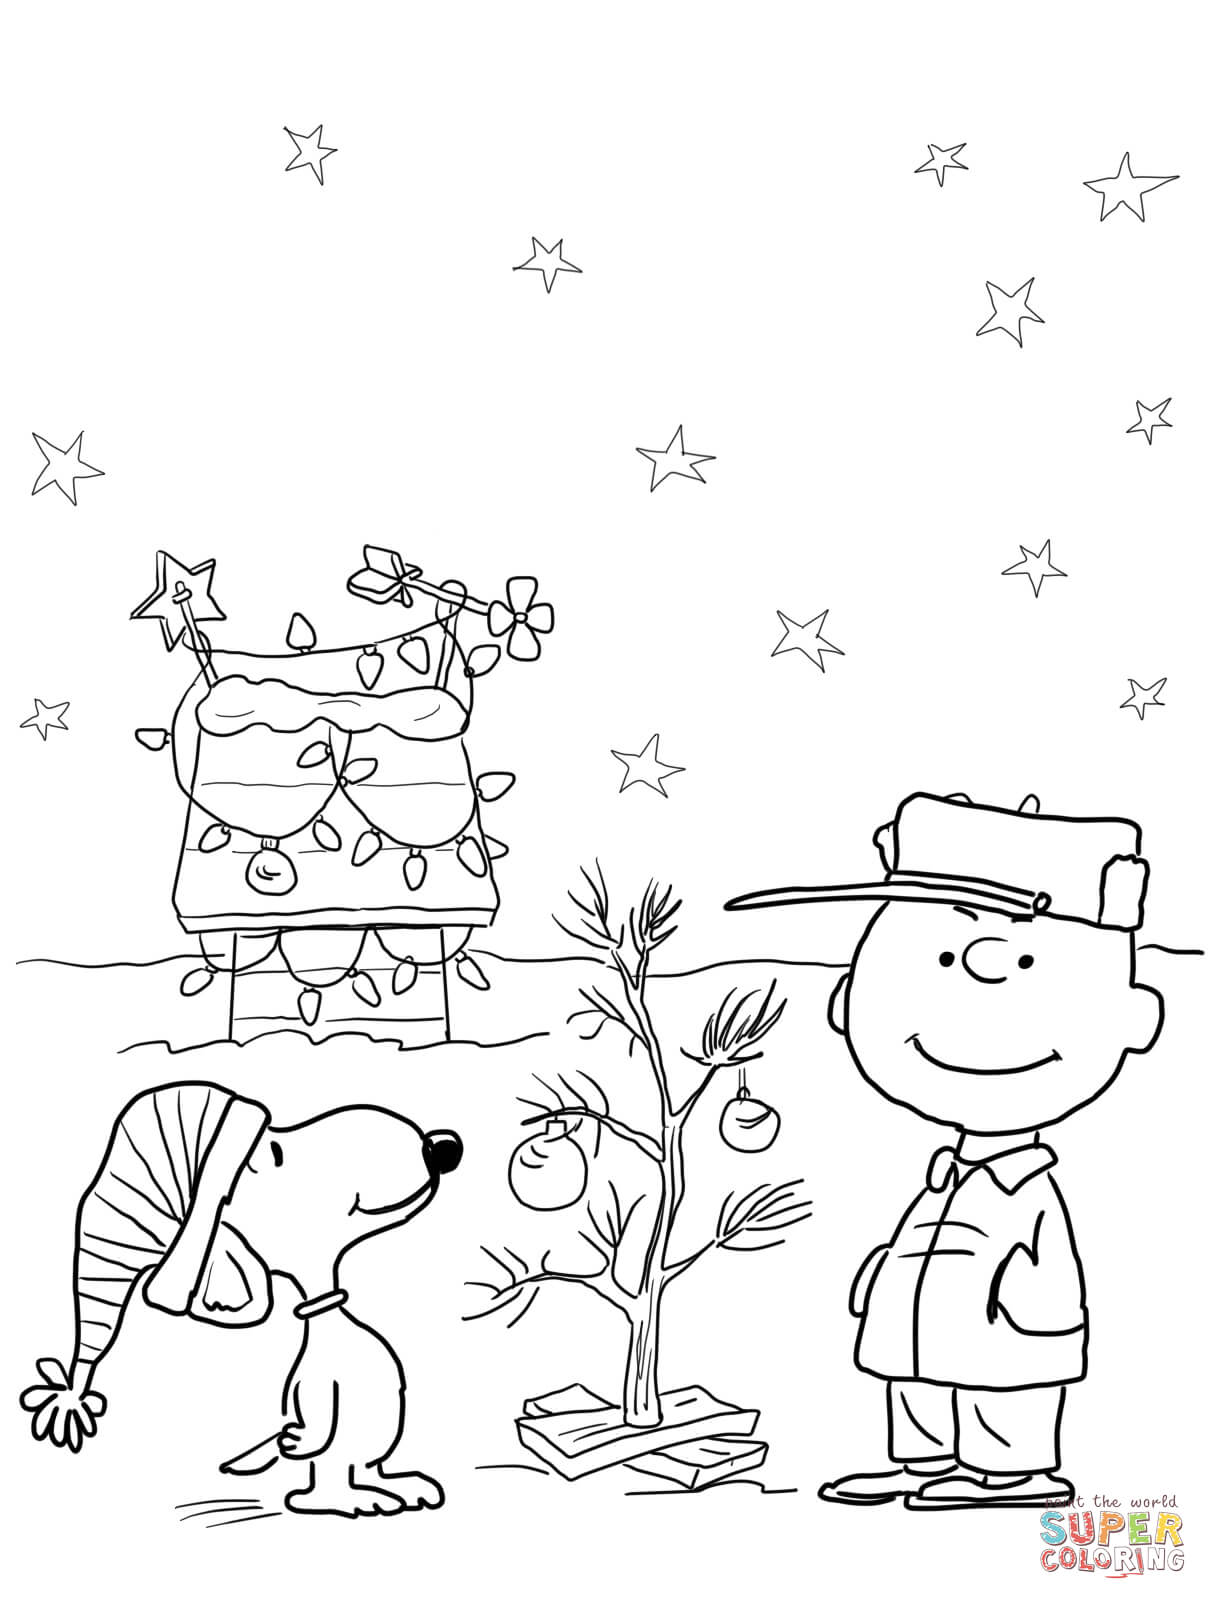 Coloring Pages About Christmas With Charlie Brown Tree Page Free Printable